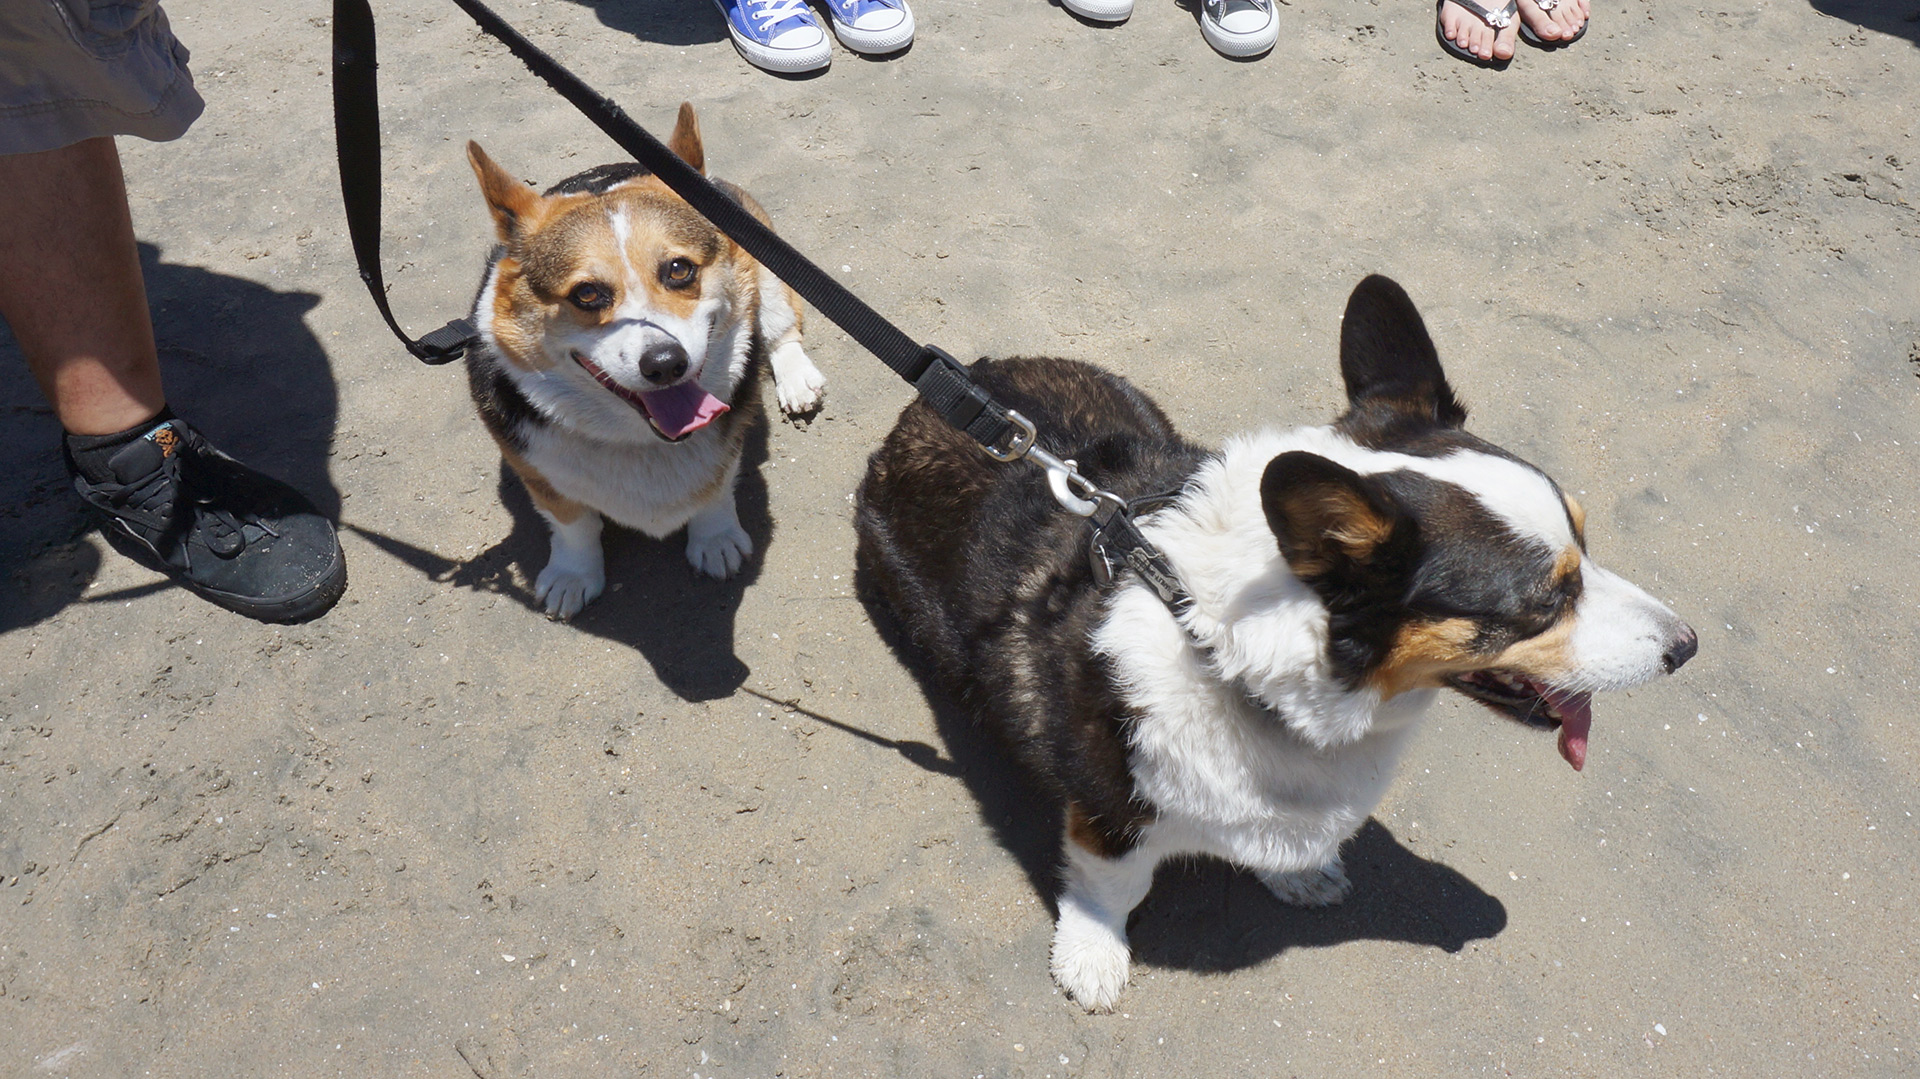 A tri-colored corgi looks up at the camera while another looks to the side.